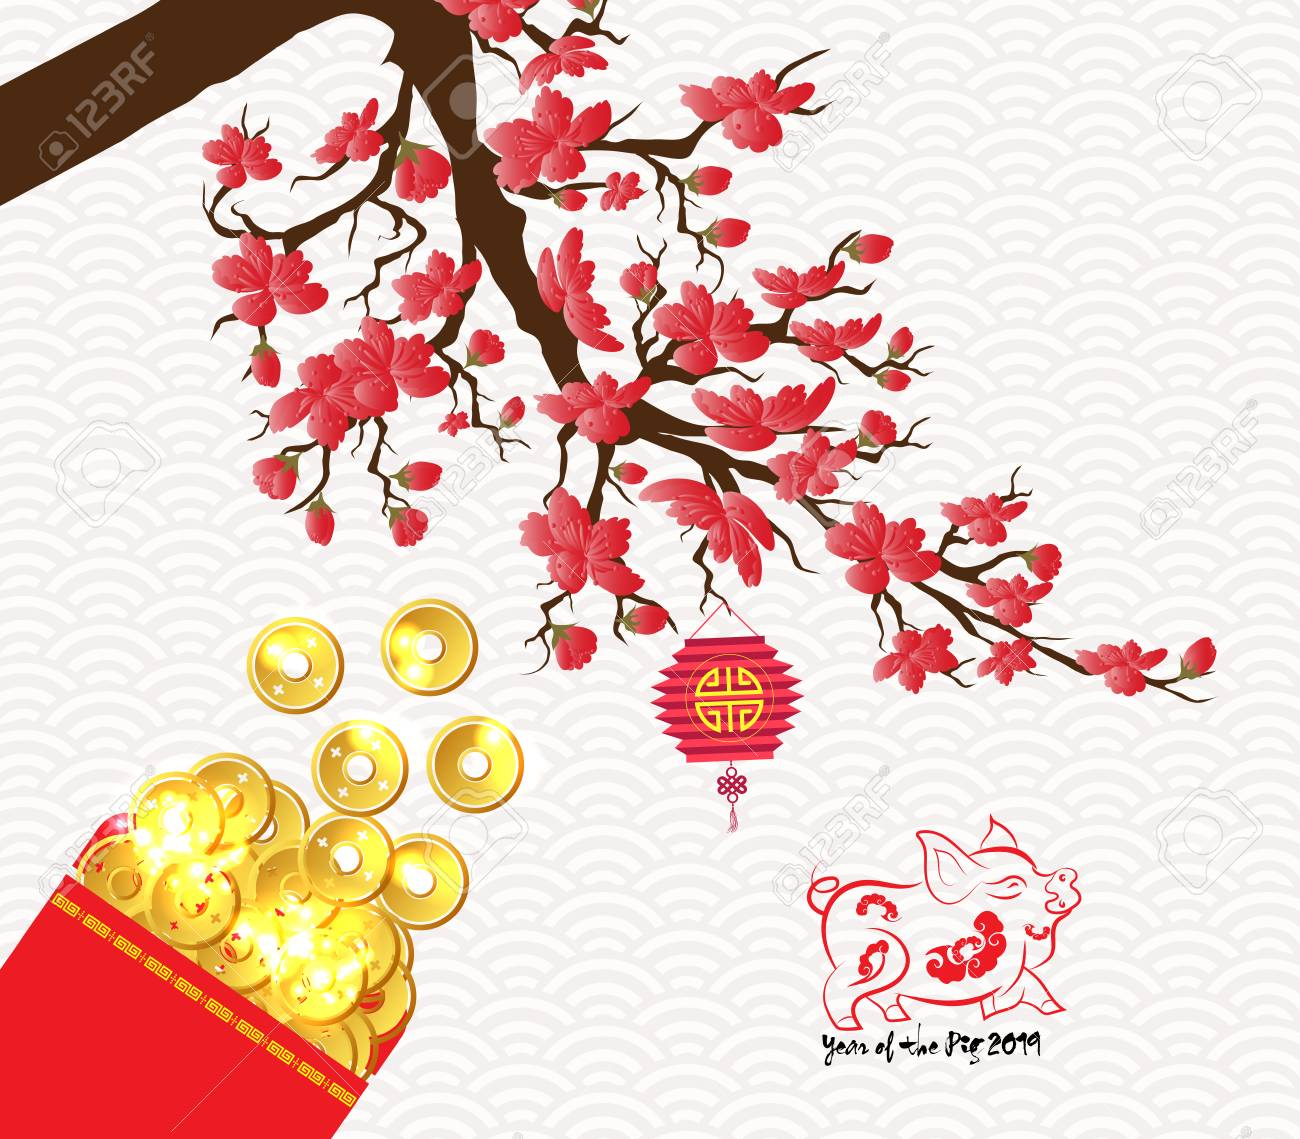 Chinese new year 2019 plum blossom red packet.